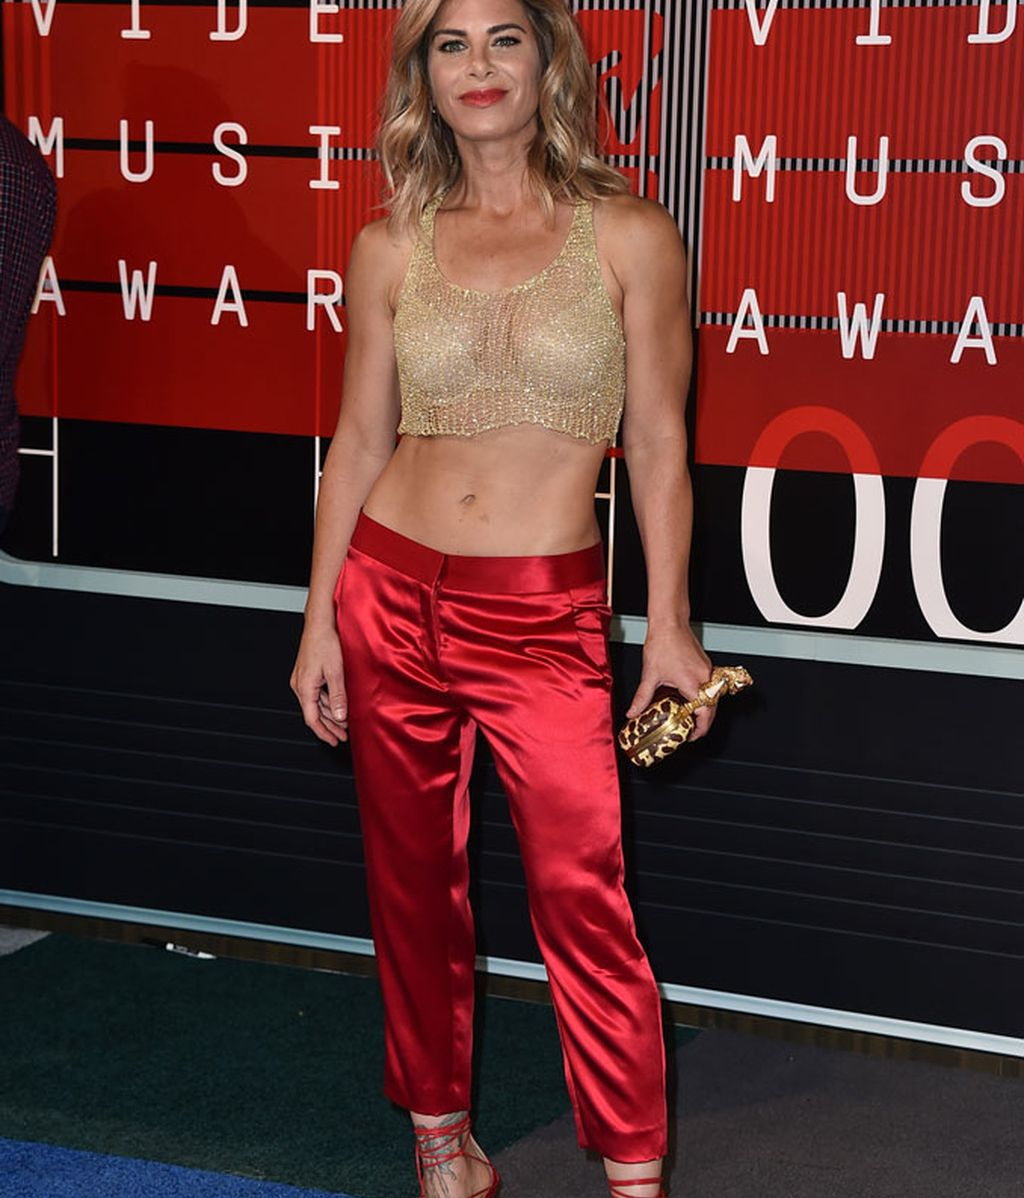 Jillian Michaels en los premios MTV